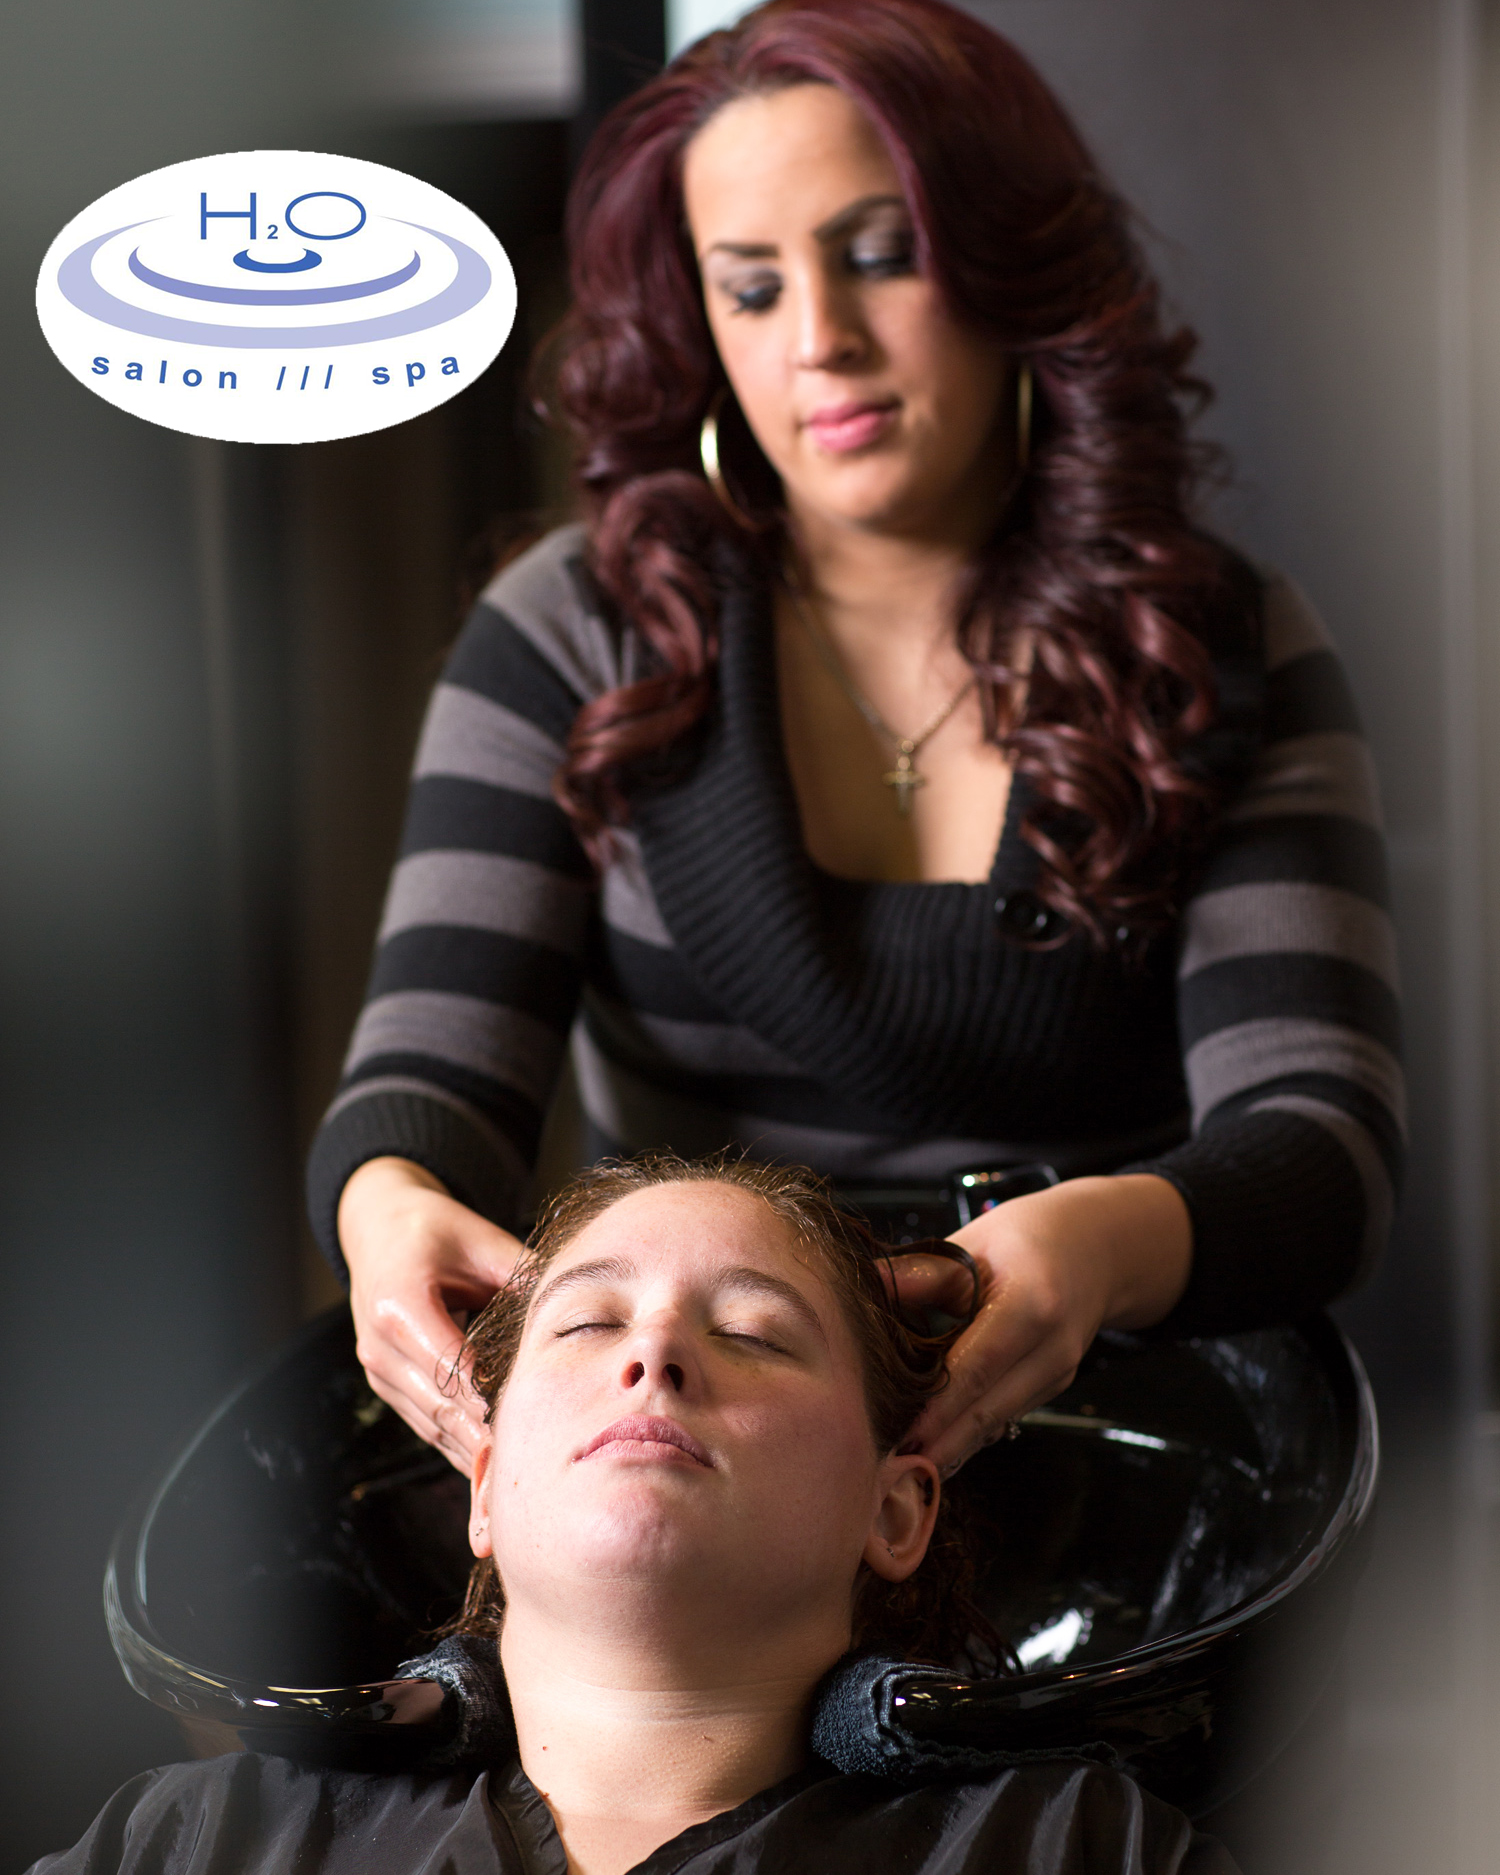 H2O Salon Spa NH hair treatment